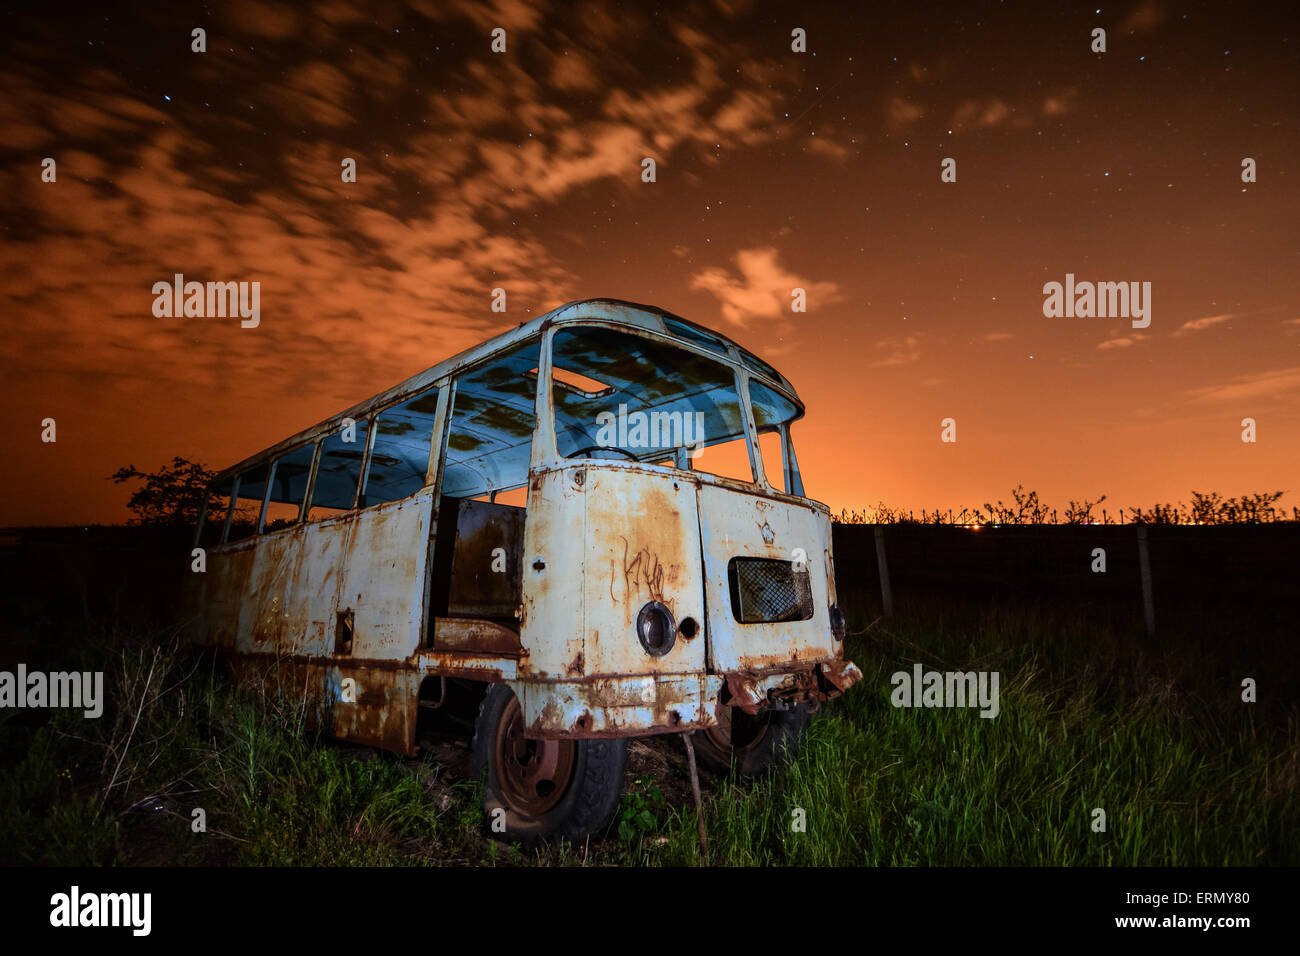 Old rusty bus in unusual  light at night sky and stars background - Stock Image